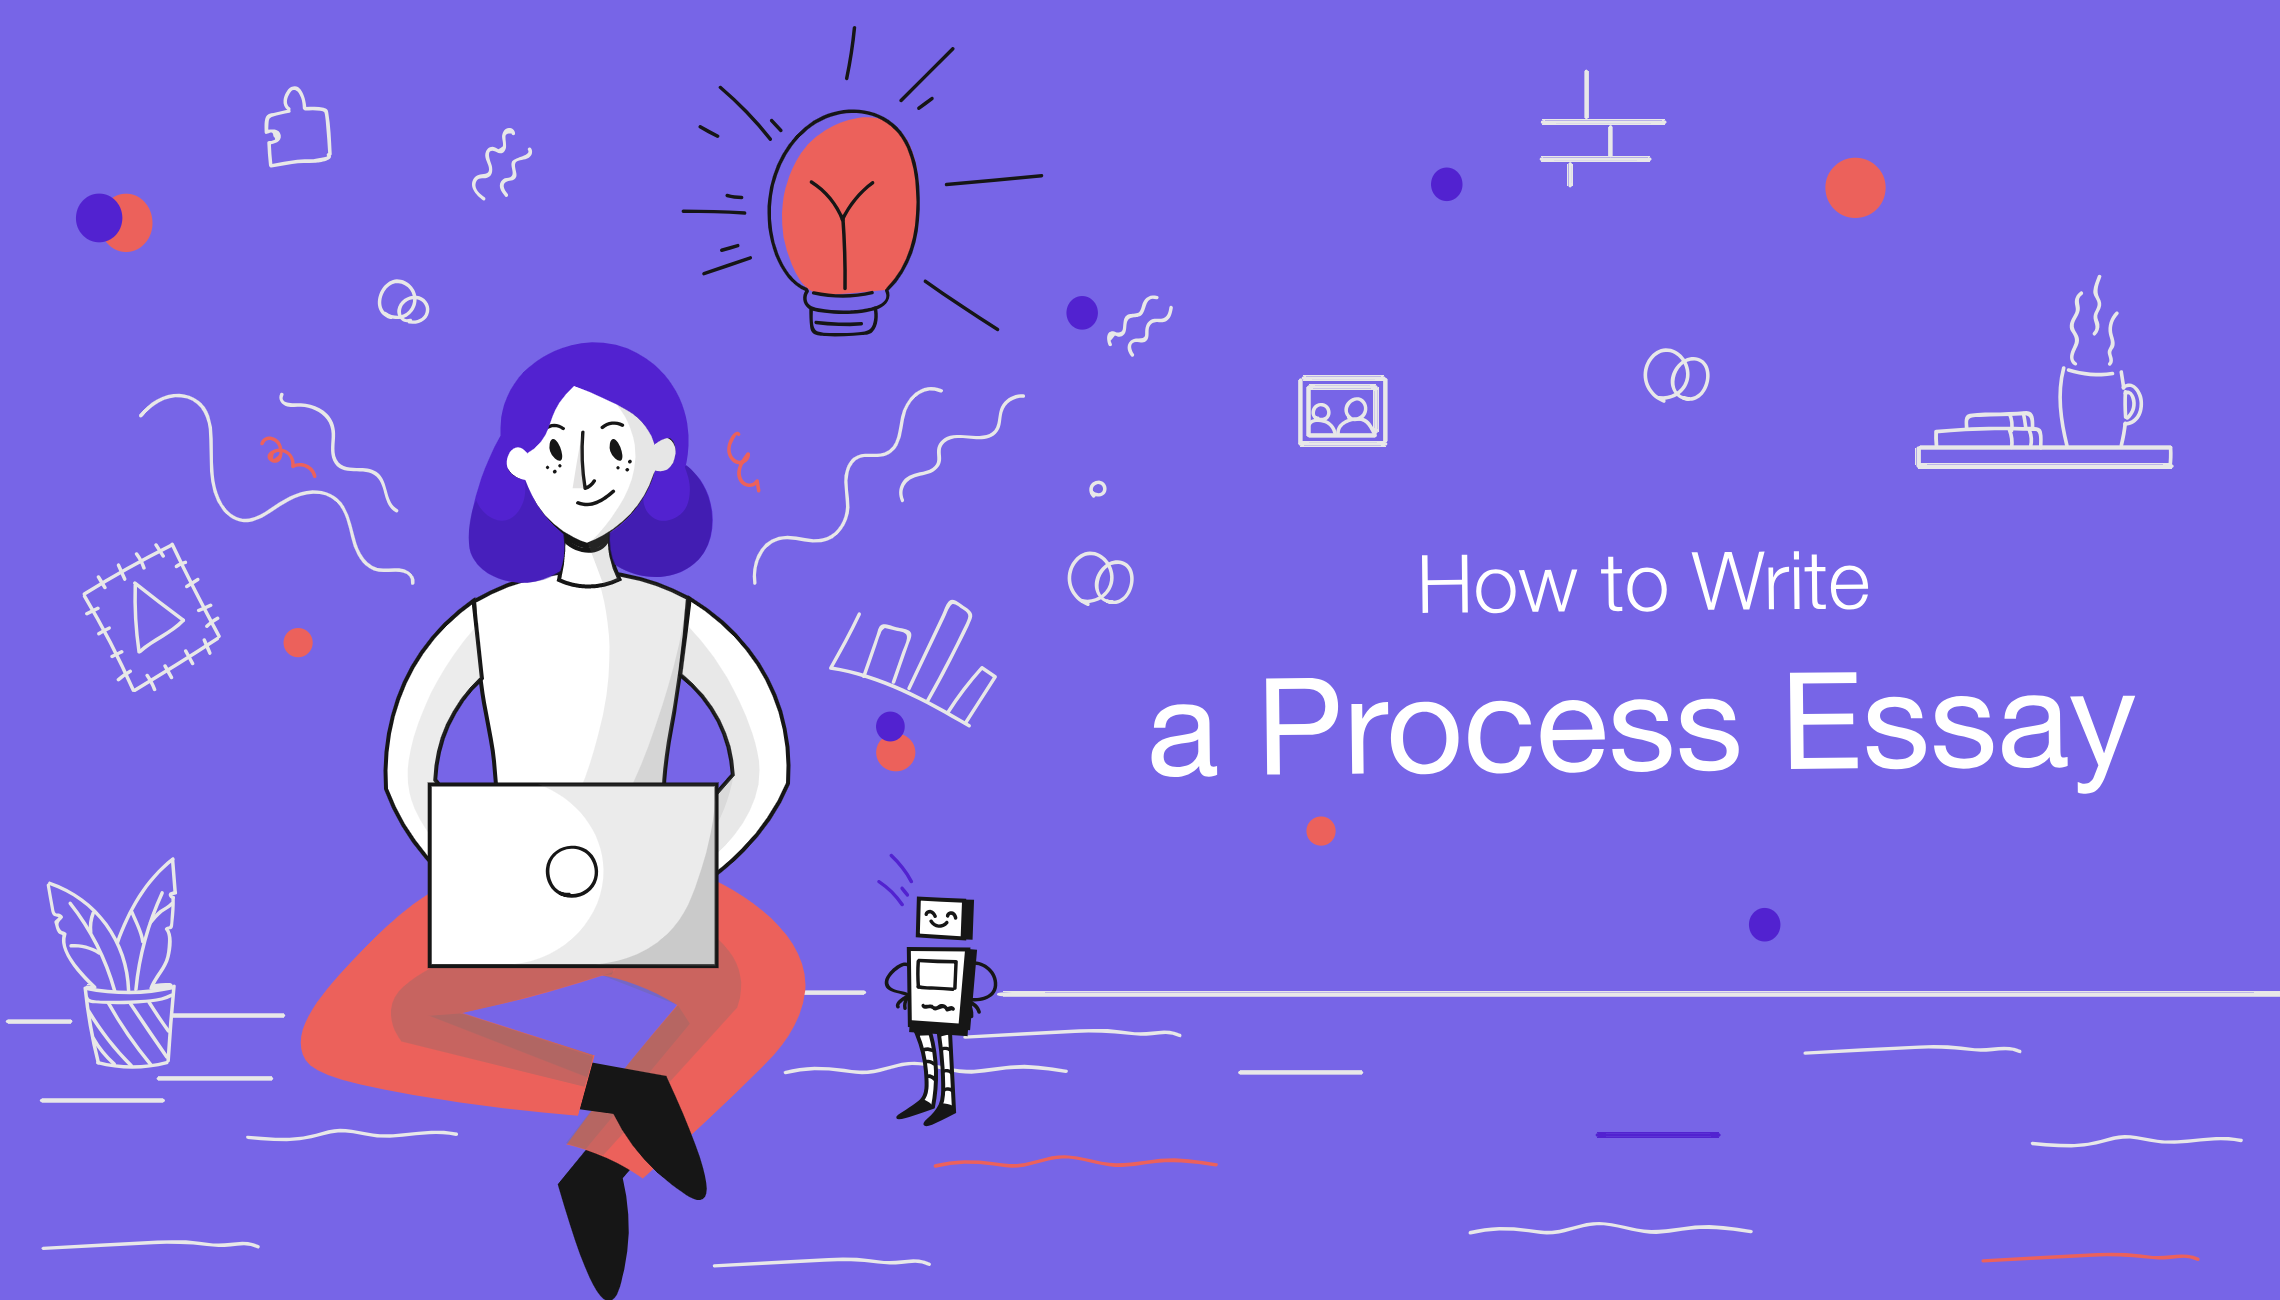 How to Write a Process Essay: Step-by-step Guide